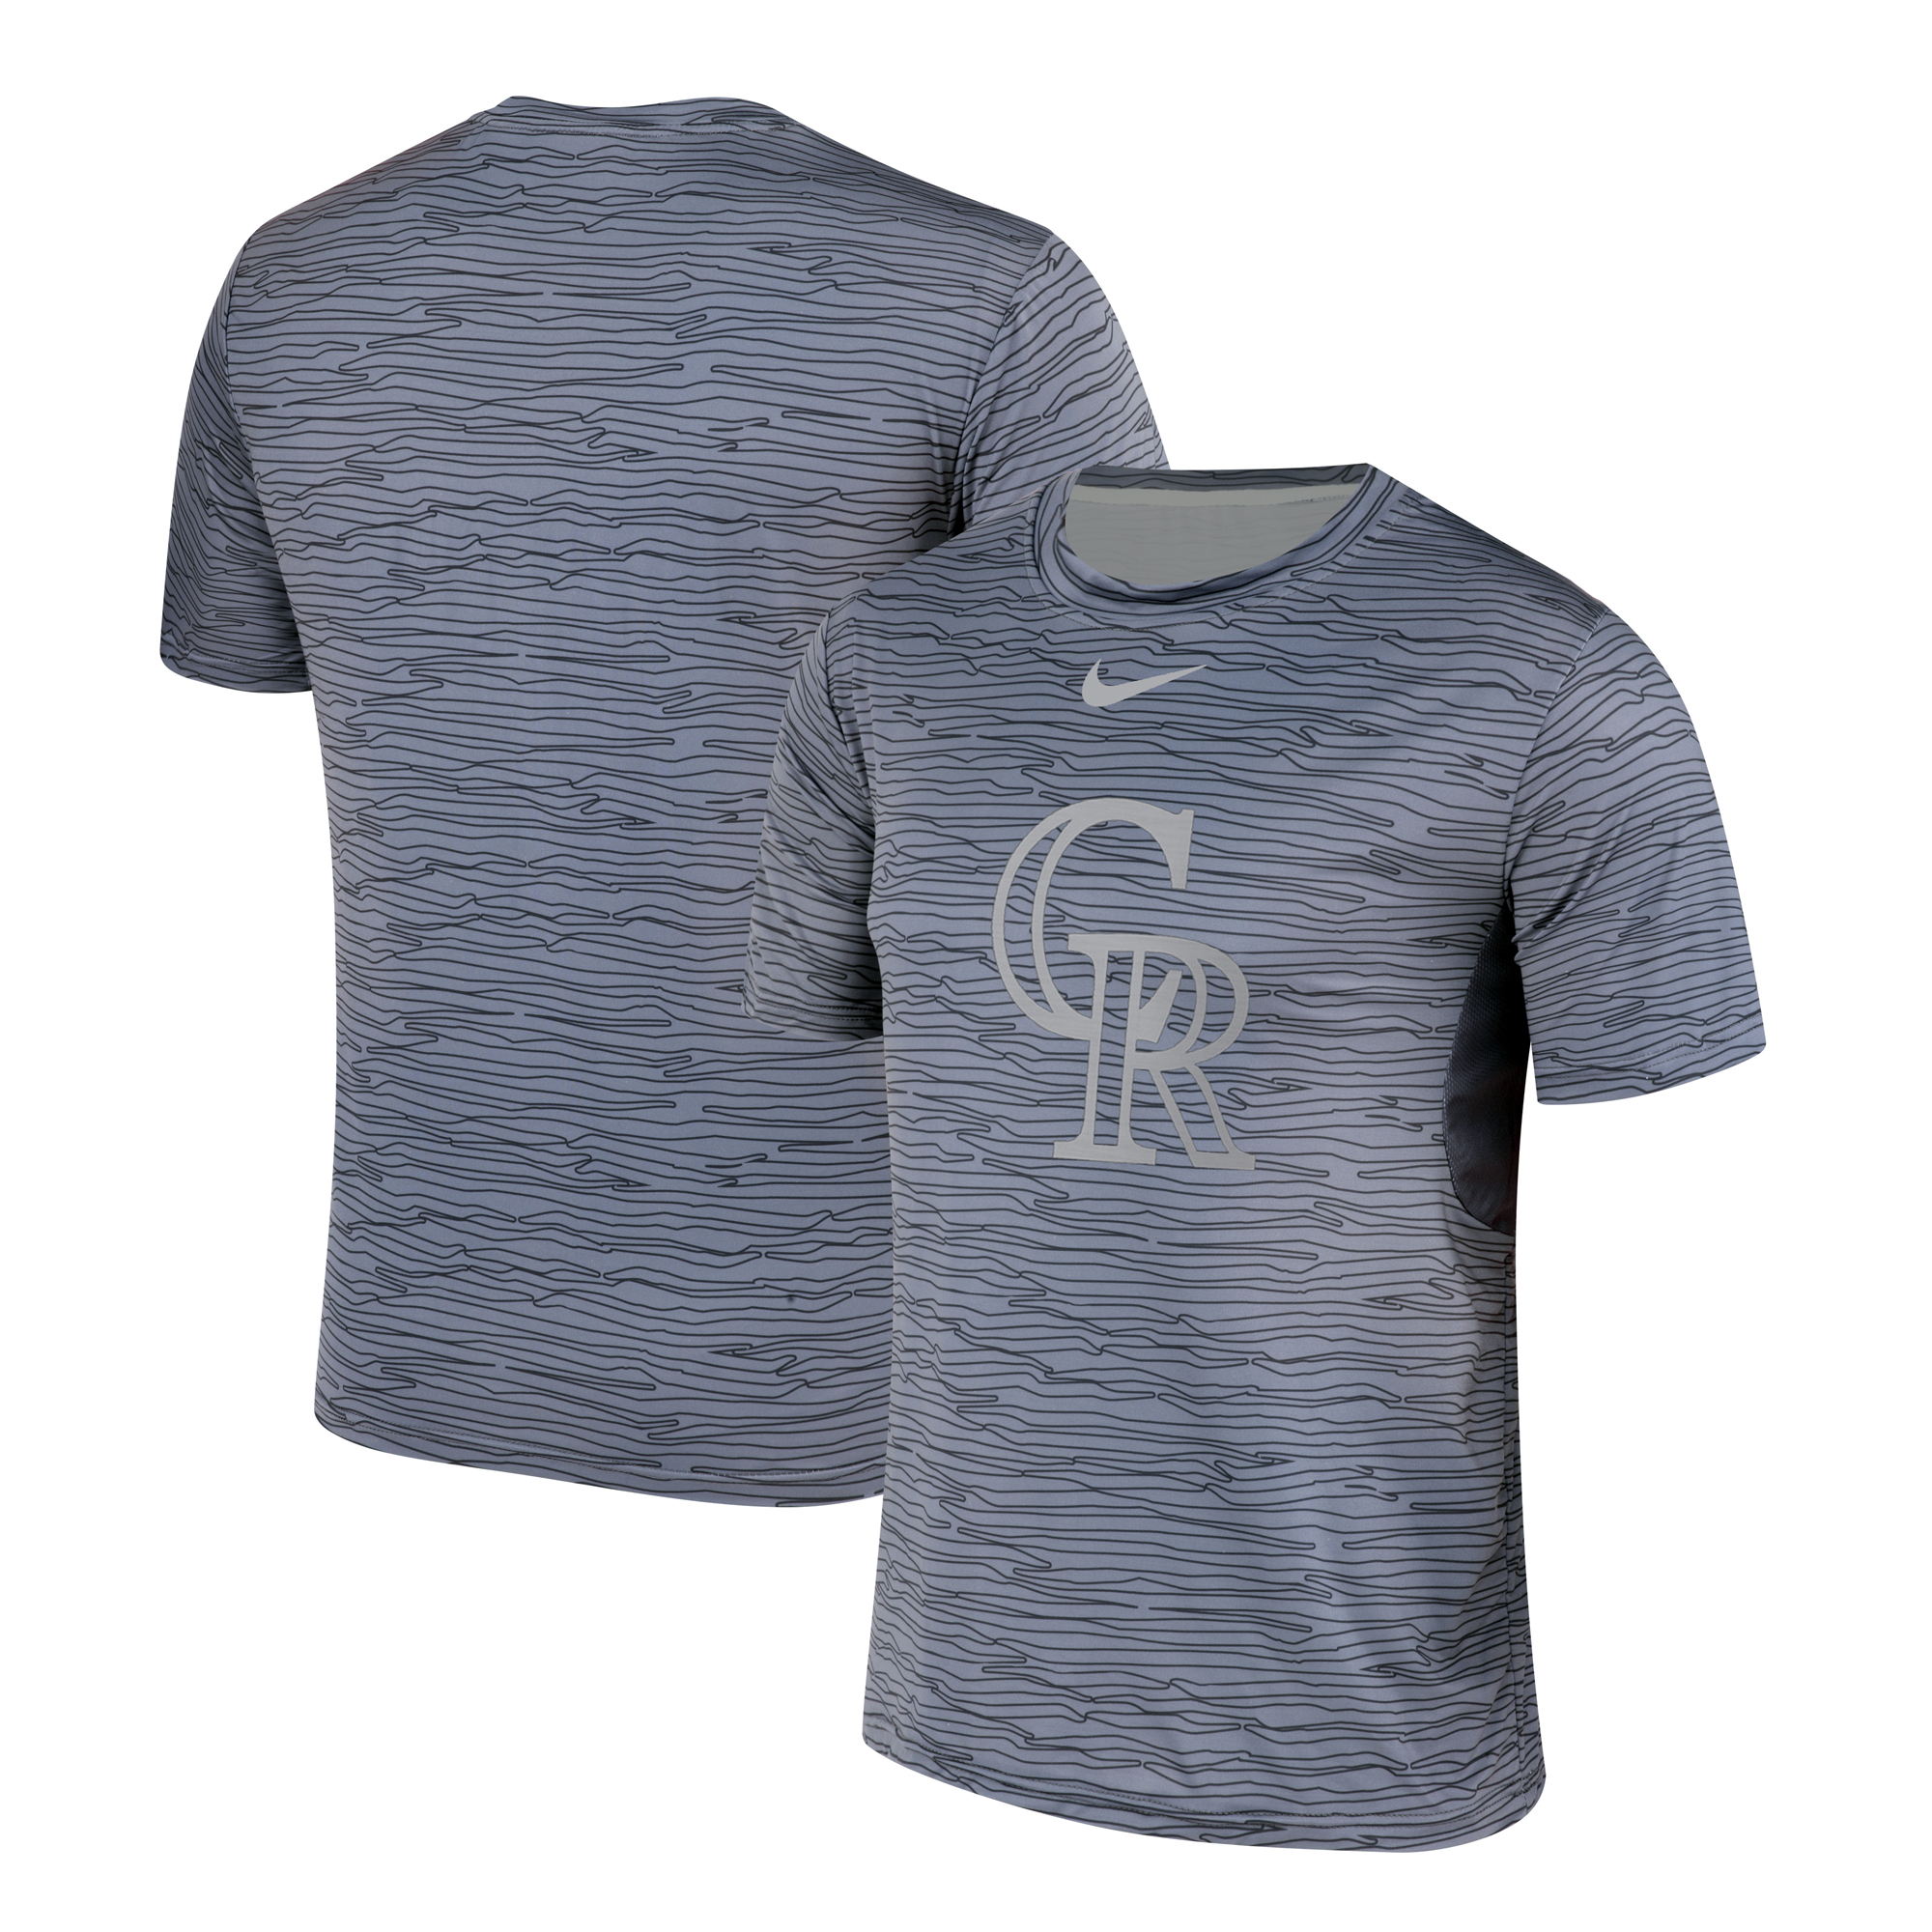 Nike Colorado Rockies Gray Black Striped Logo Performance T-Shirt